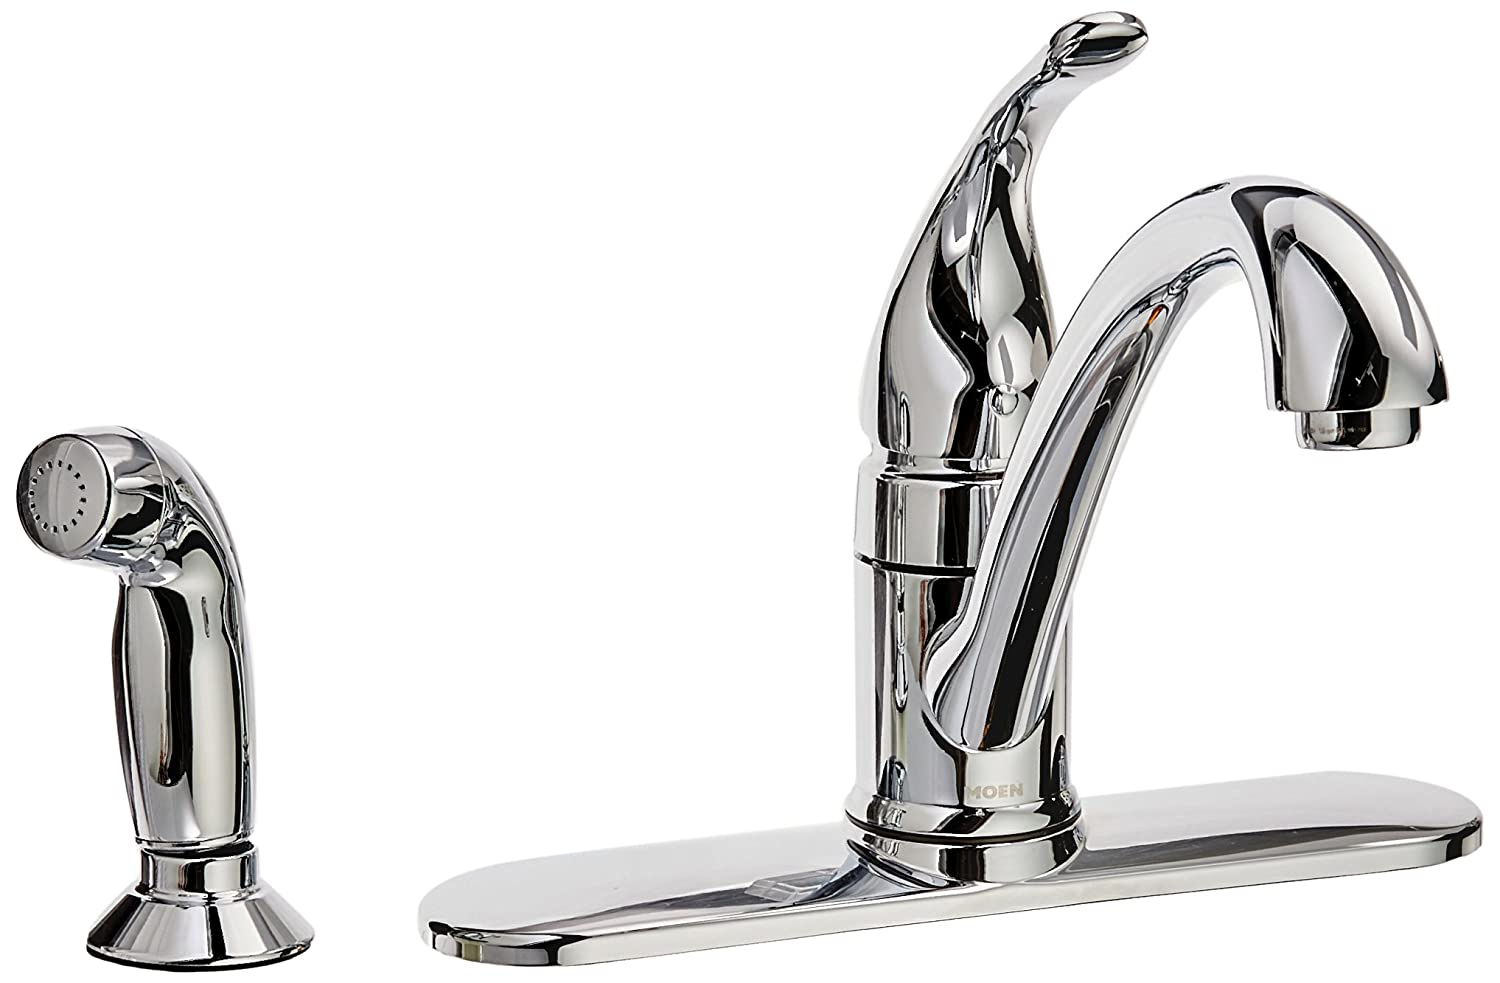 Amazon.com: Moen CA87480 Kitchen Faucet with Side Spray from the ...